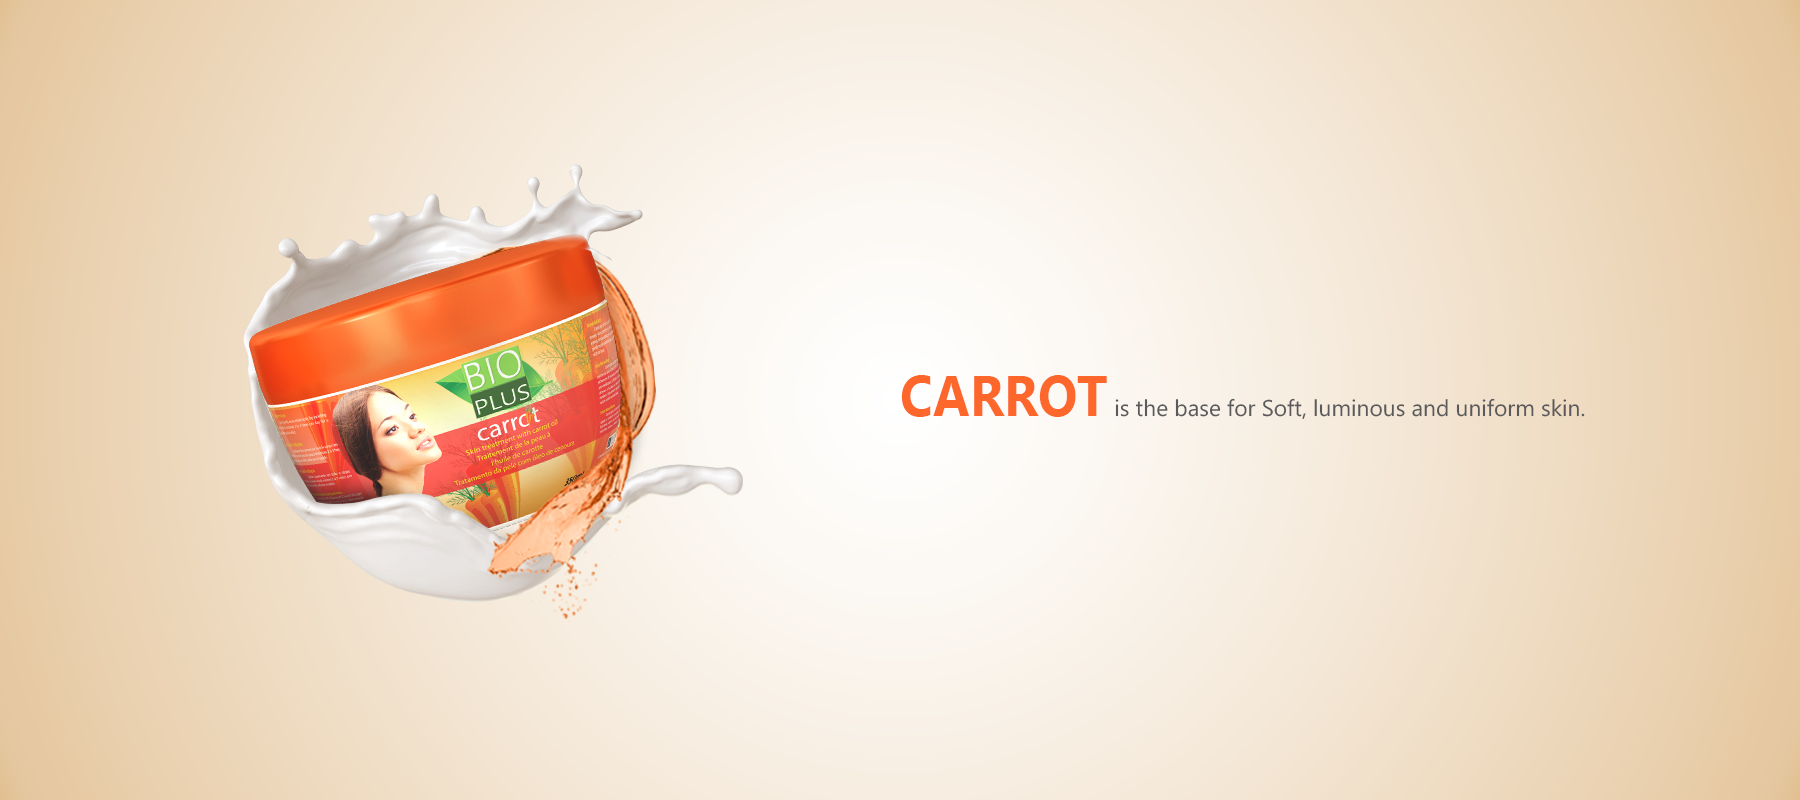 Banner of Bio Plus Carrot Product